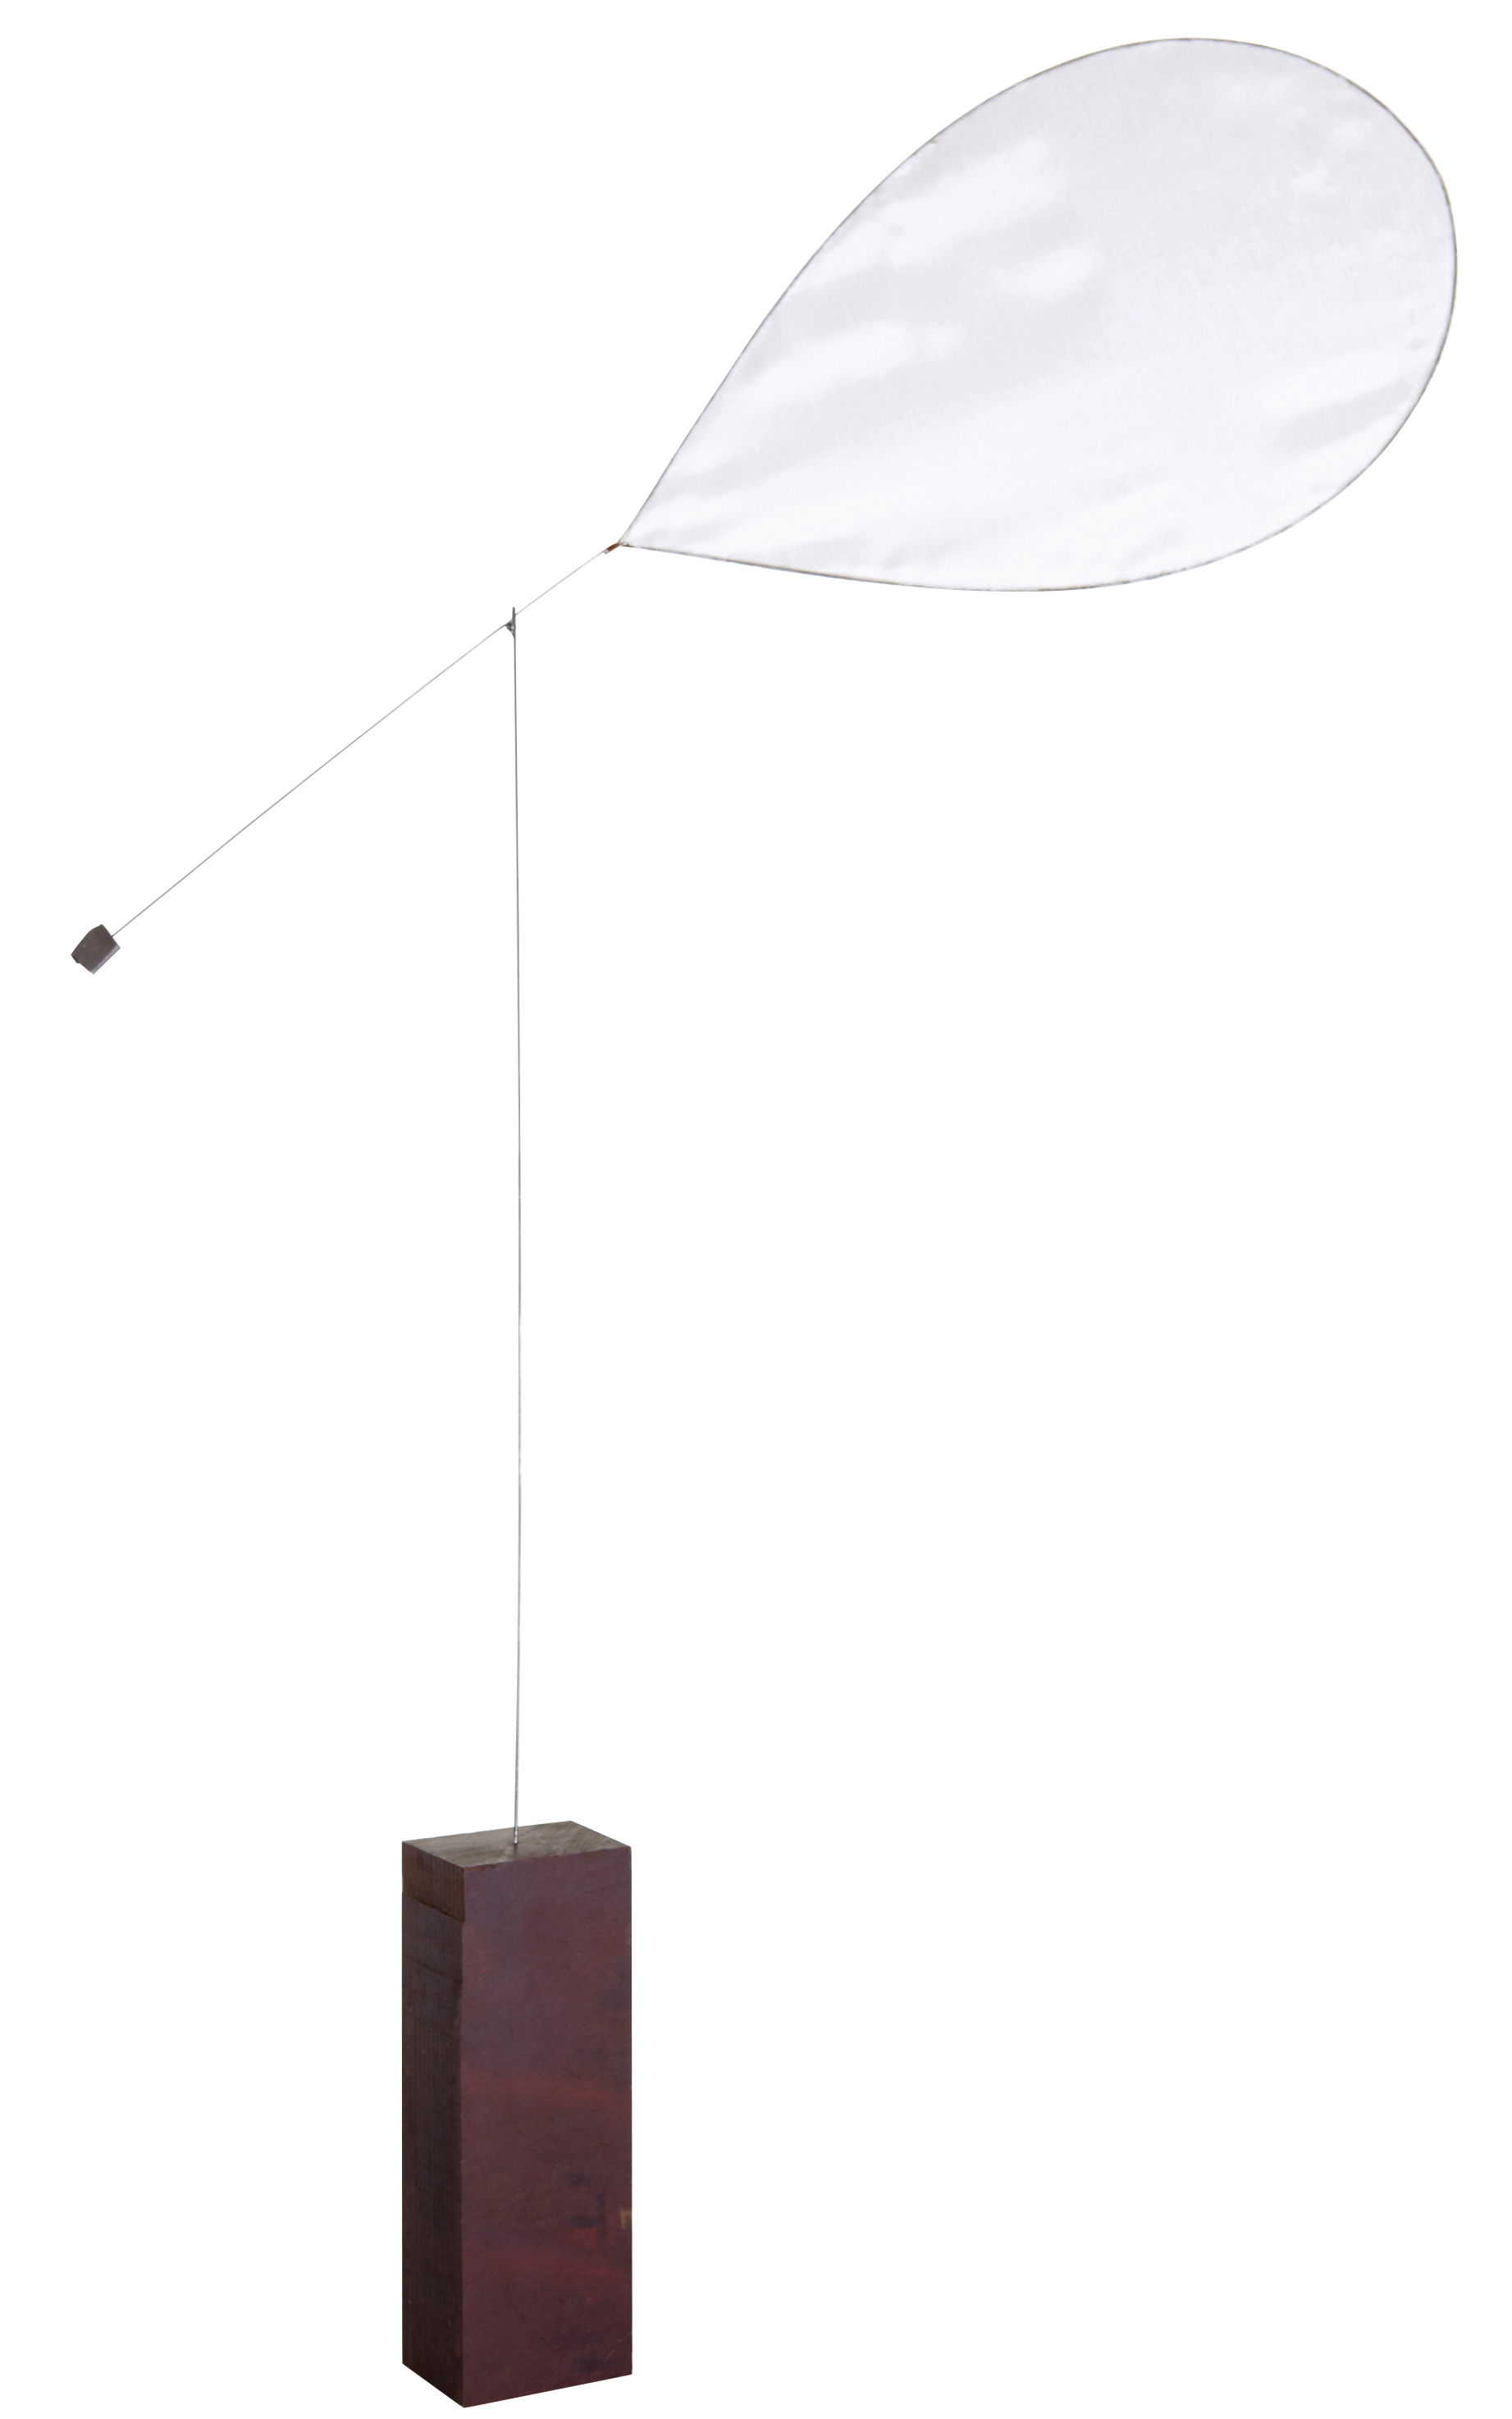 Decoration - Home Accessories - Mobile by L'atelier d'exercices - White, dark wood - Piano cord, Silk